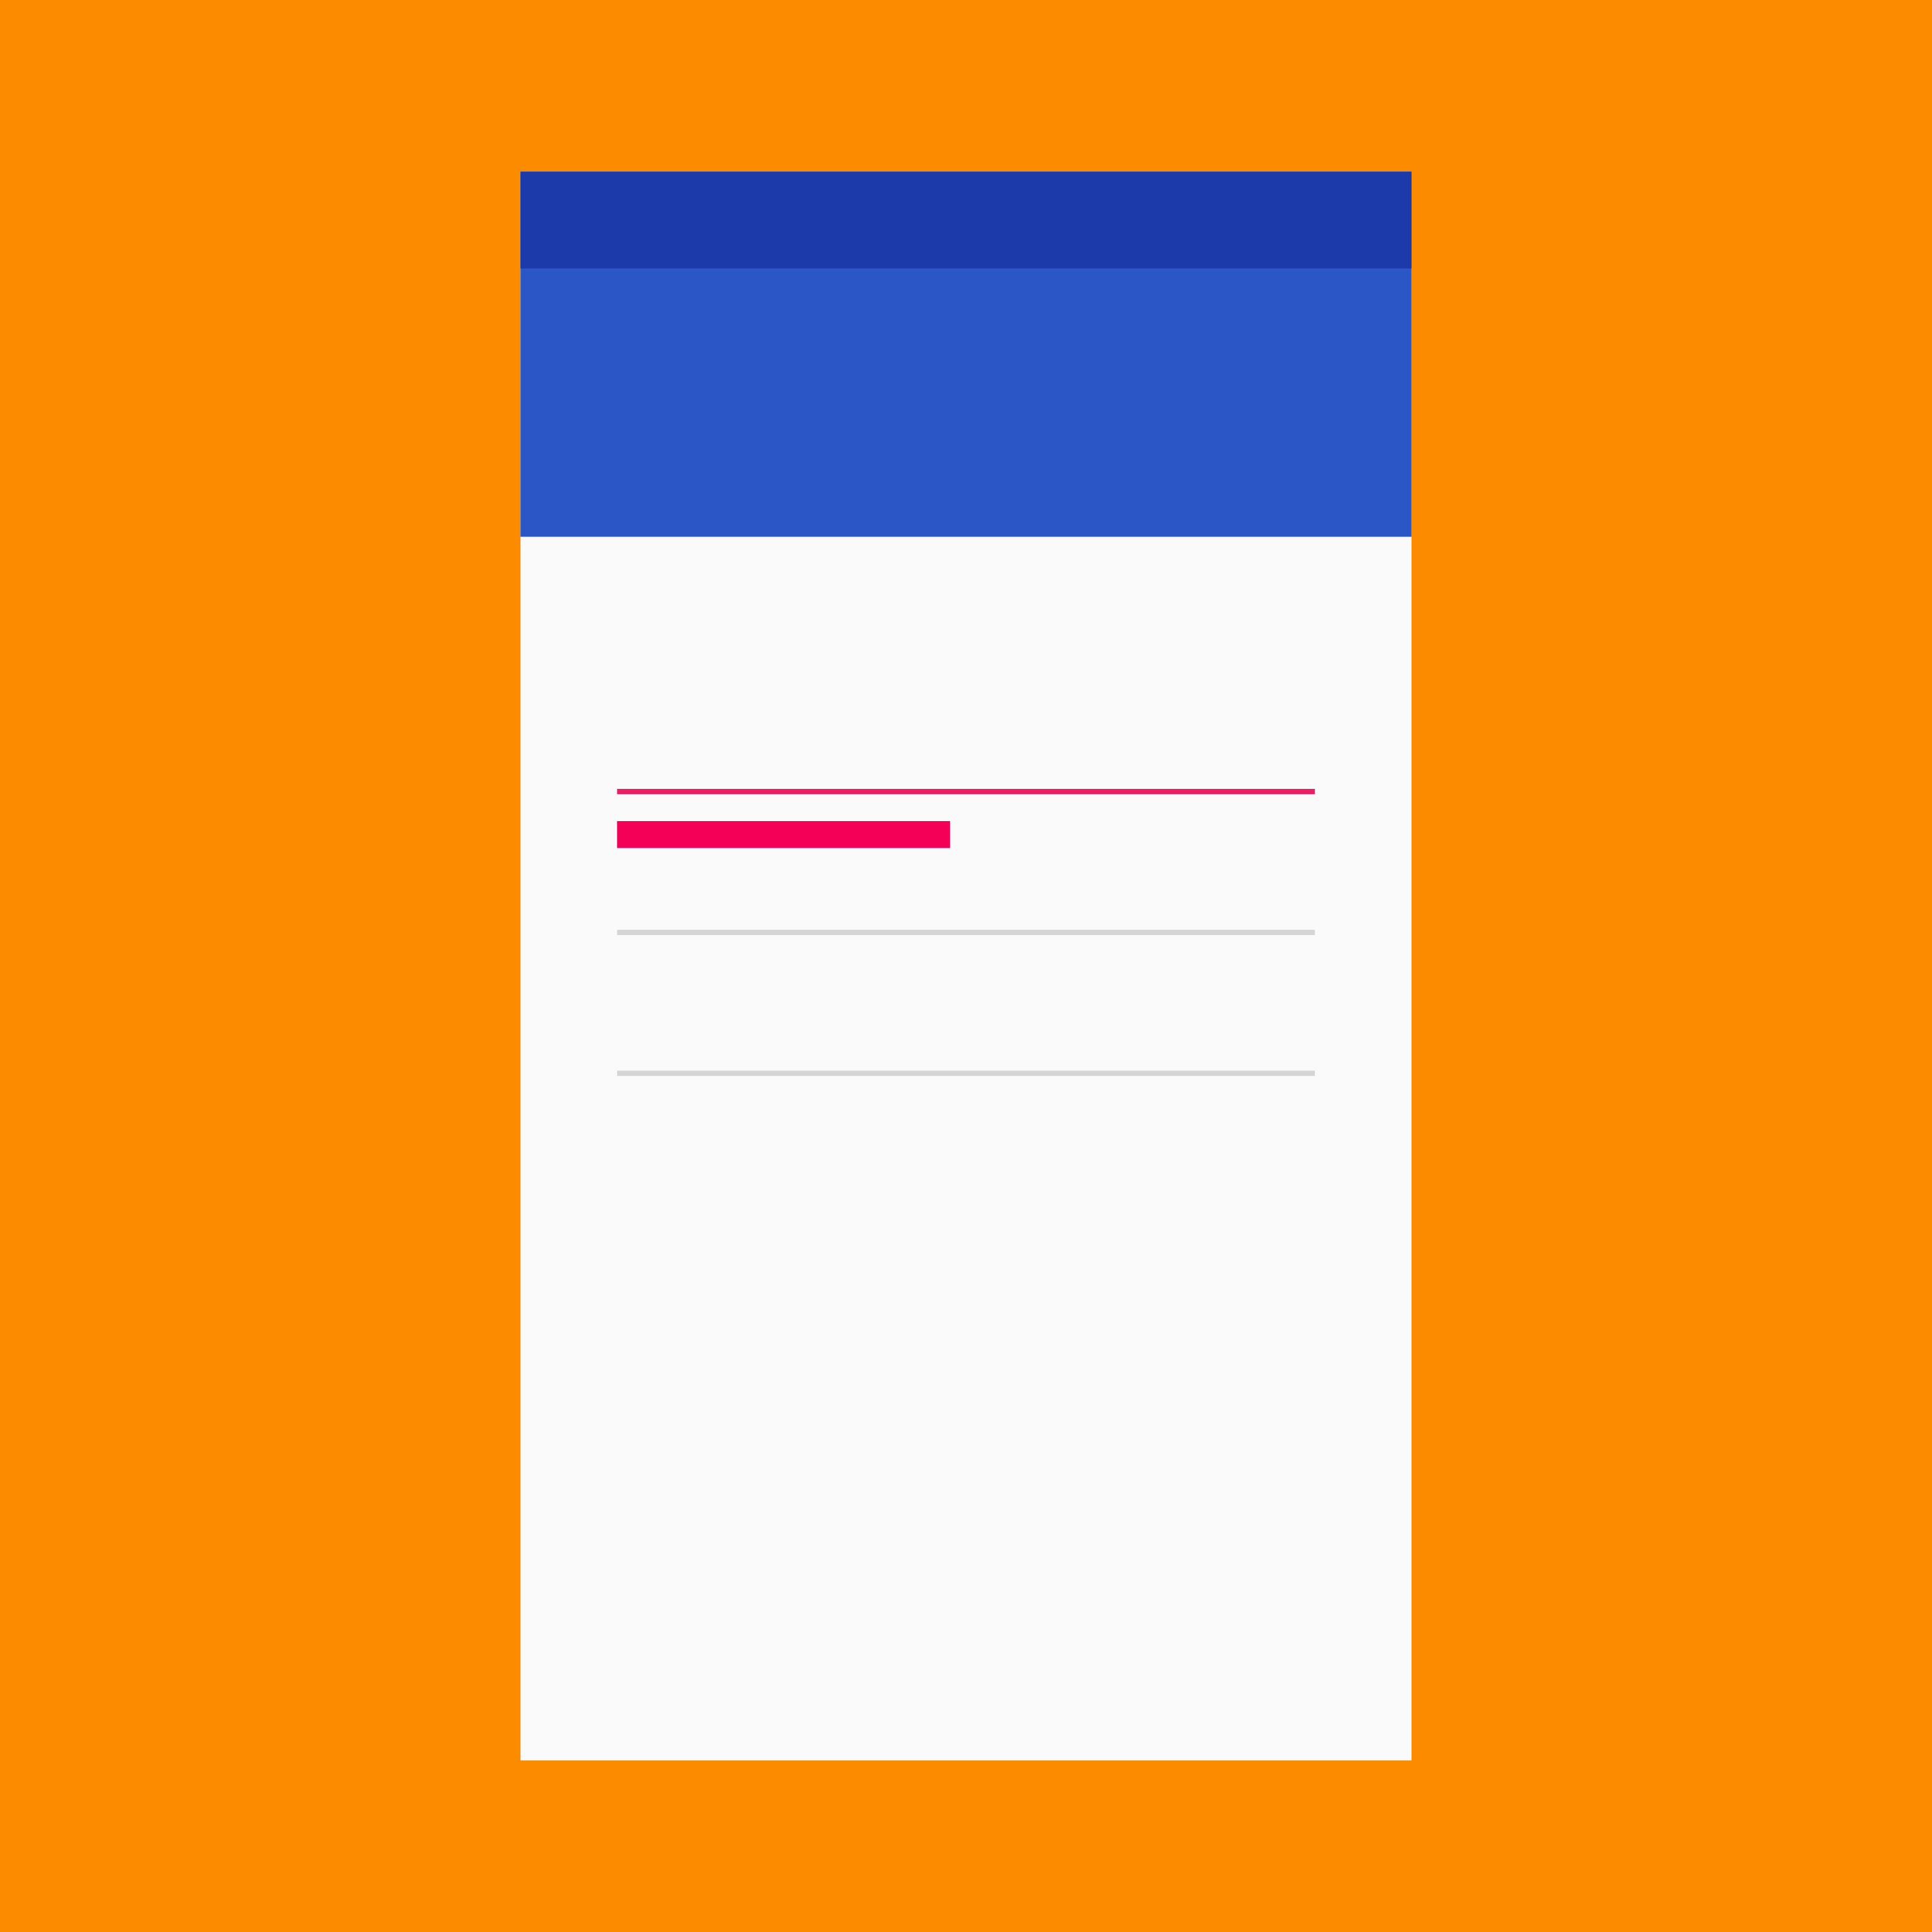 Errors - Patterns - Material Design